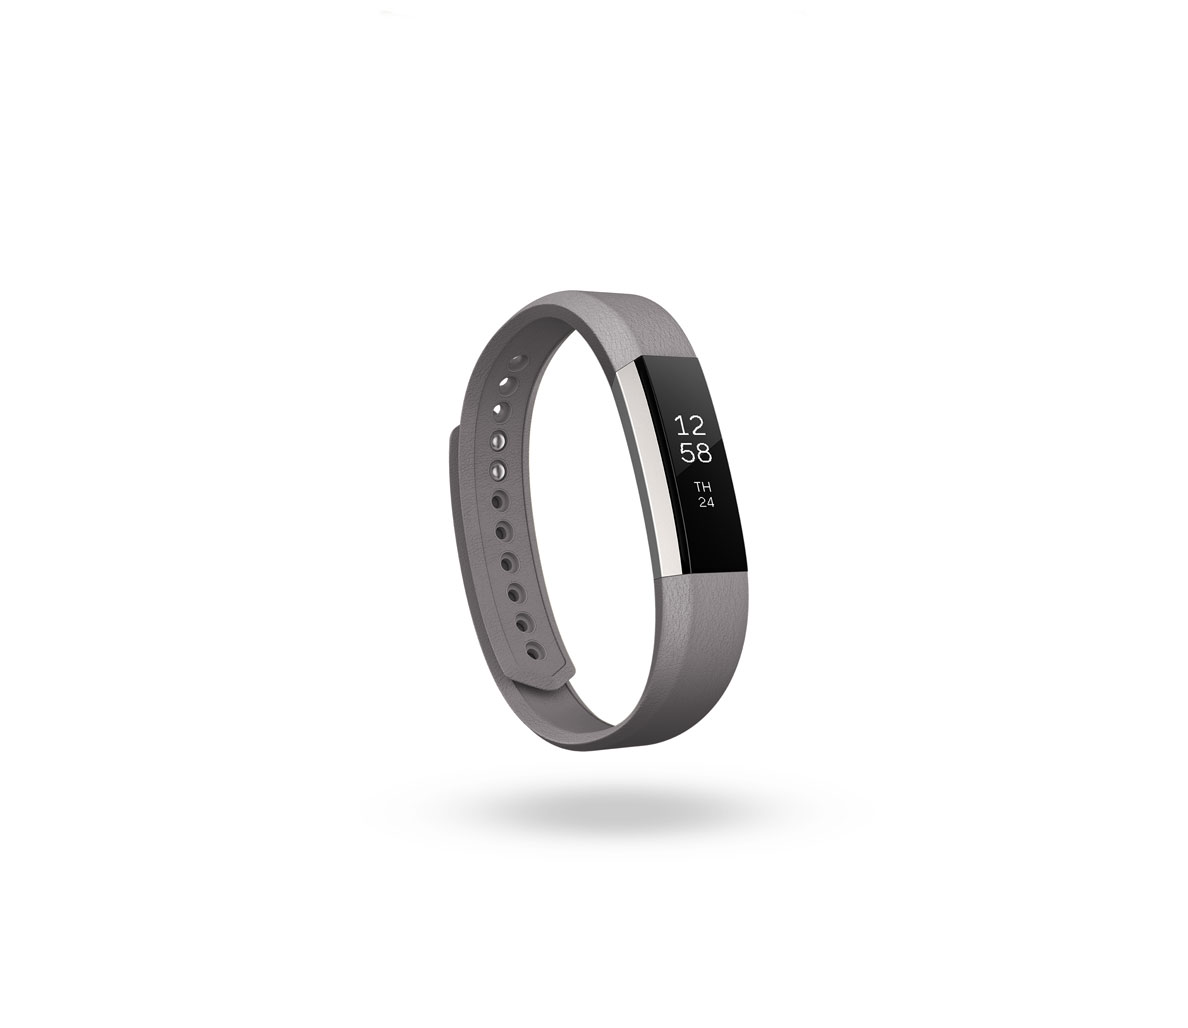 4 Things You Need to Know About the Fitbit Alta